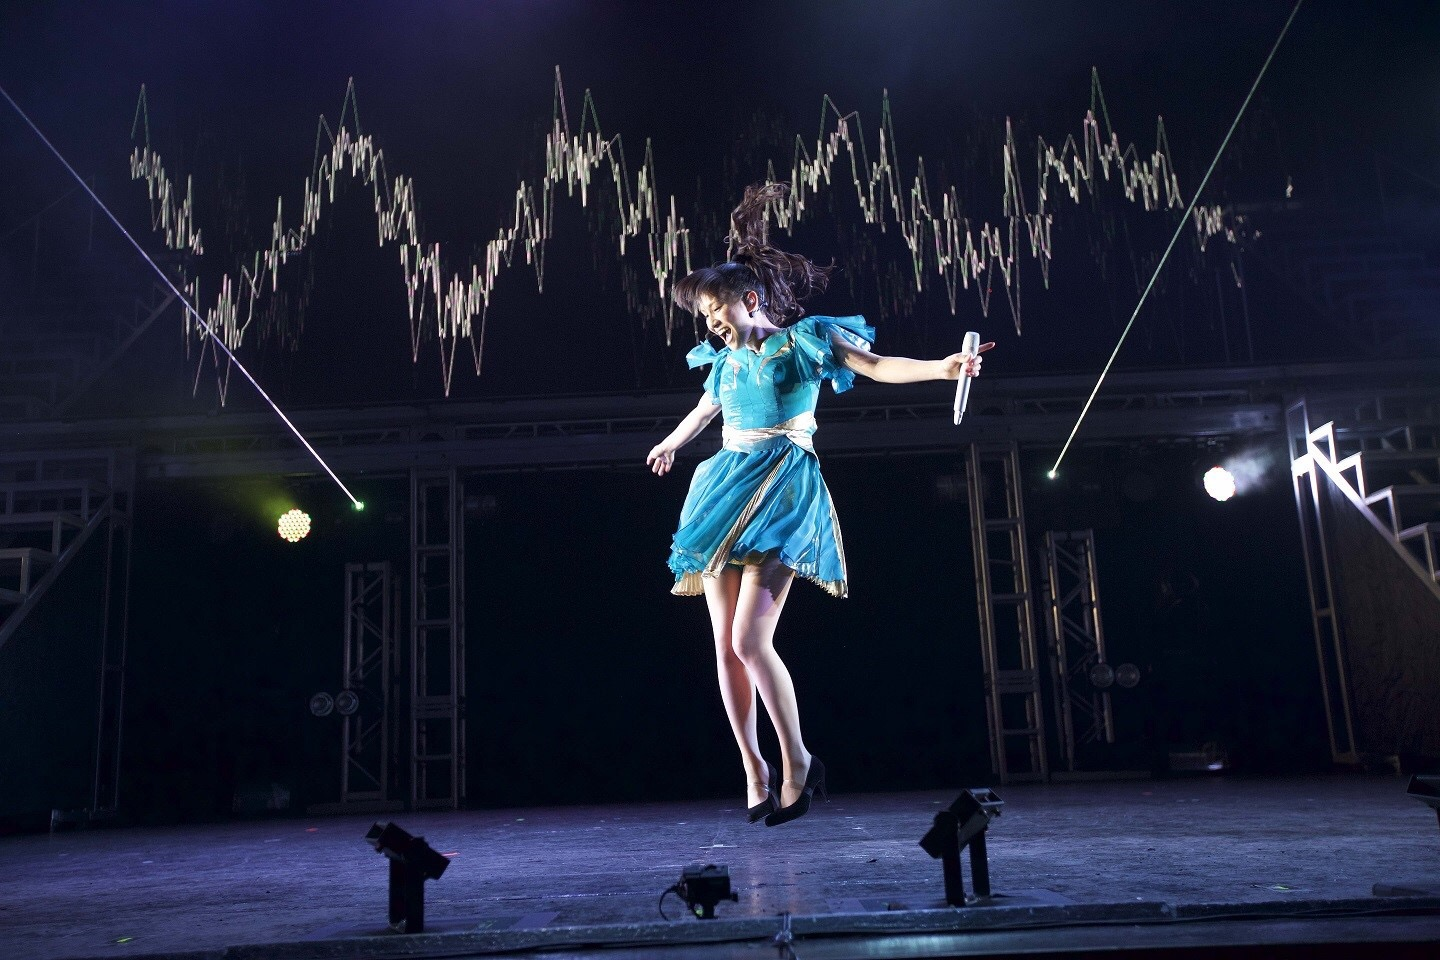 Perfume starts their 'Cosmic Explorer' US tour with a sold out Los Angeles show